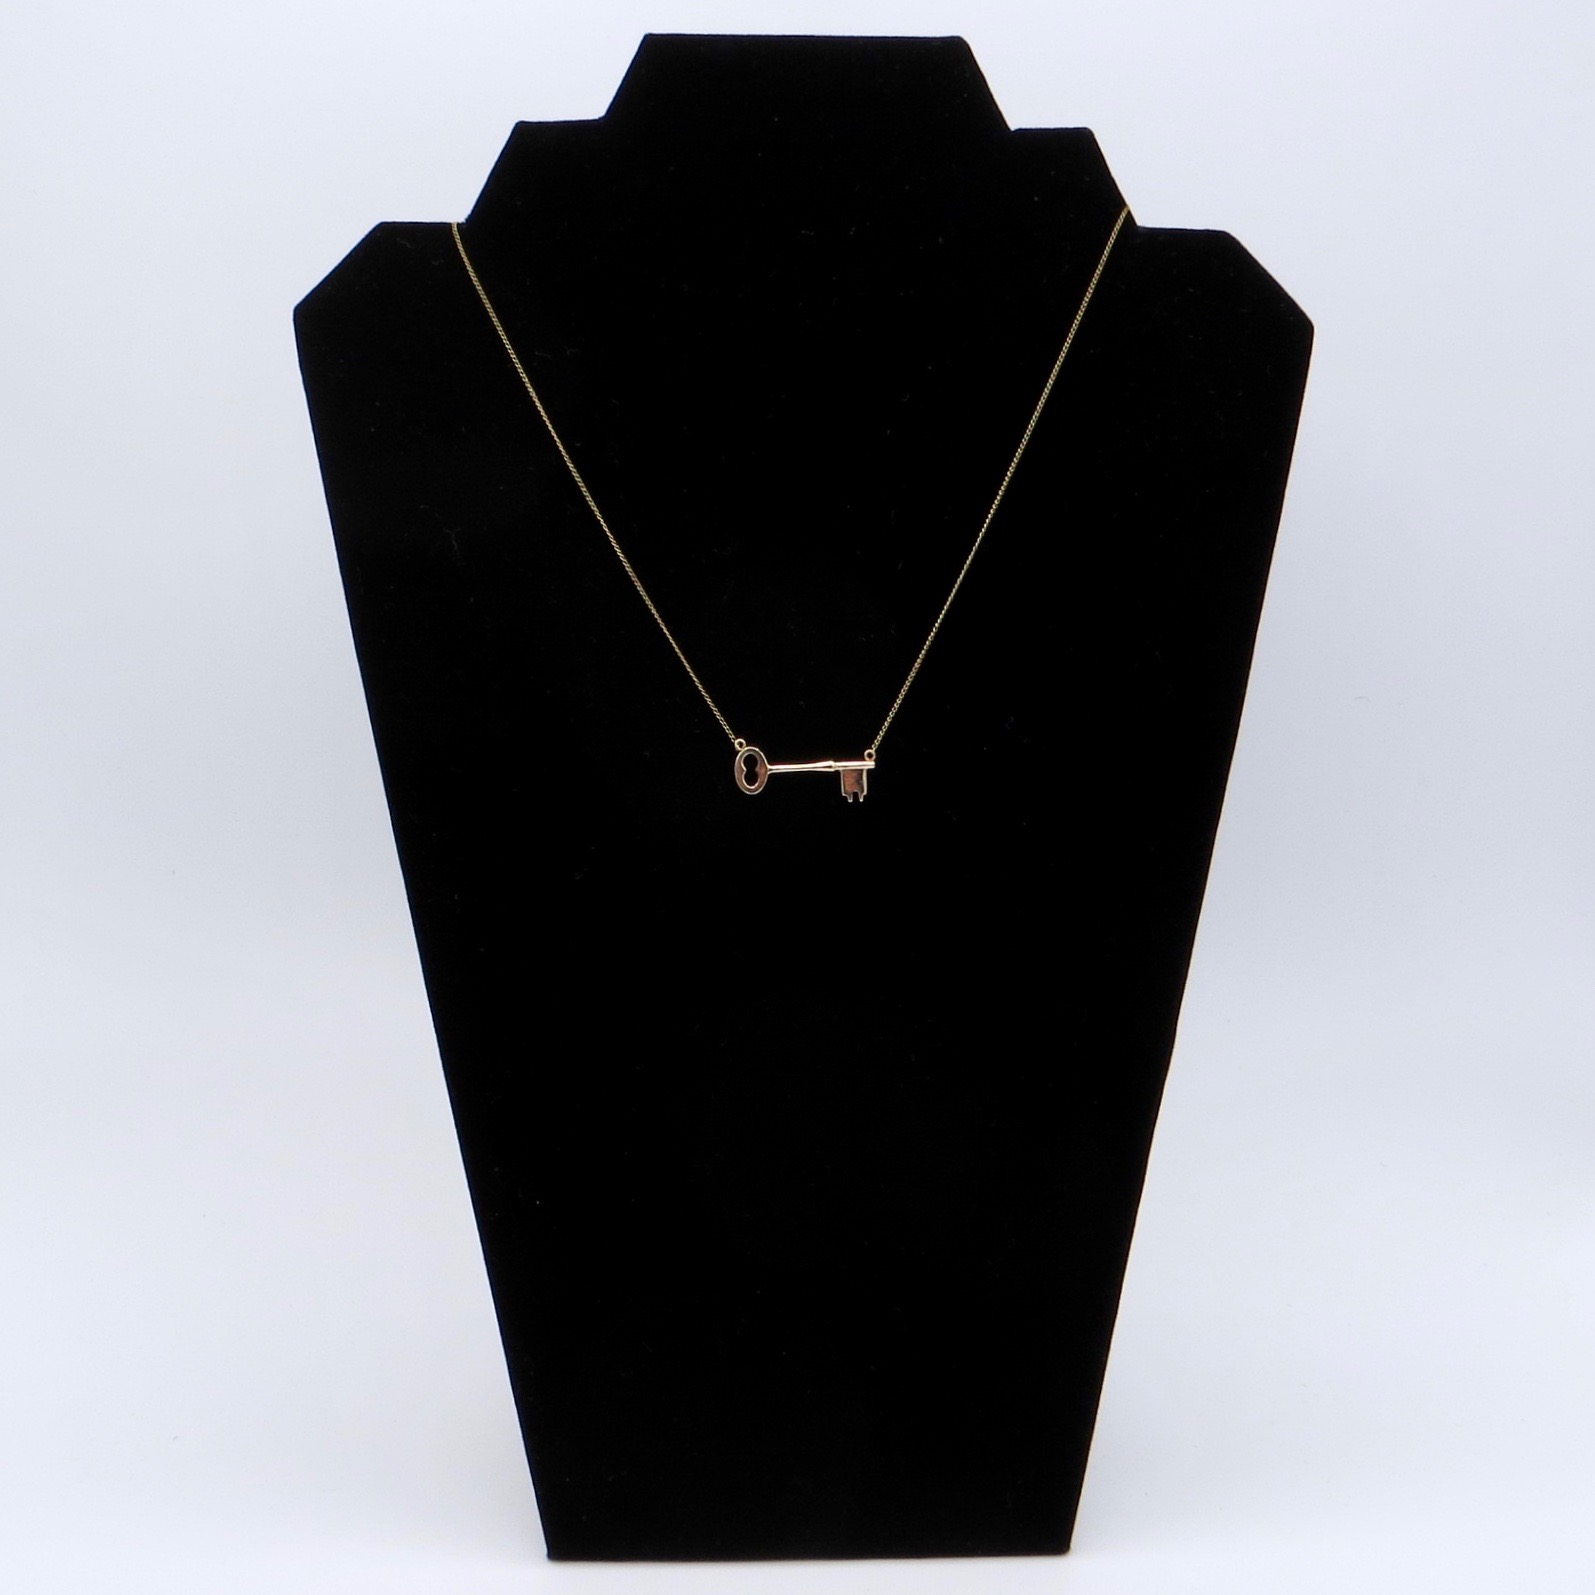 10kt Gold Key Necklace (GF Chain)